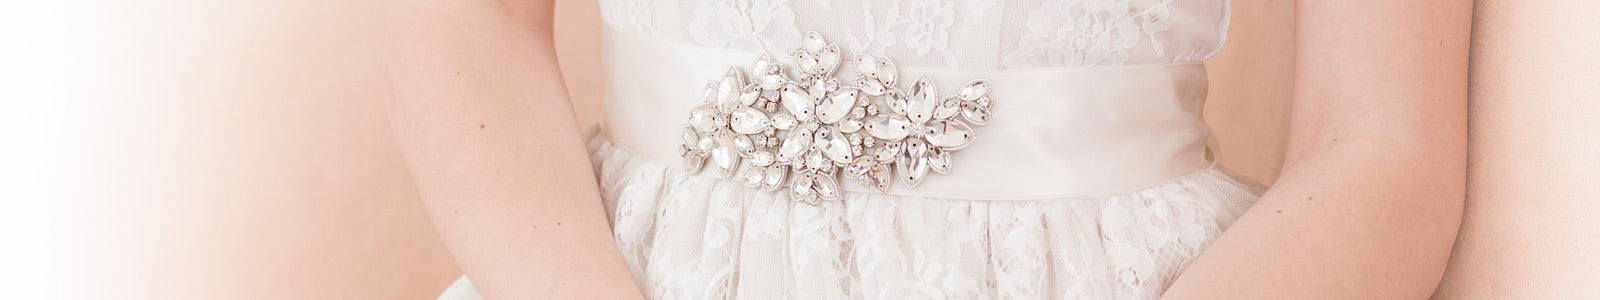 Wedding Dress Belts Uk